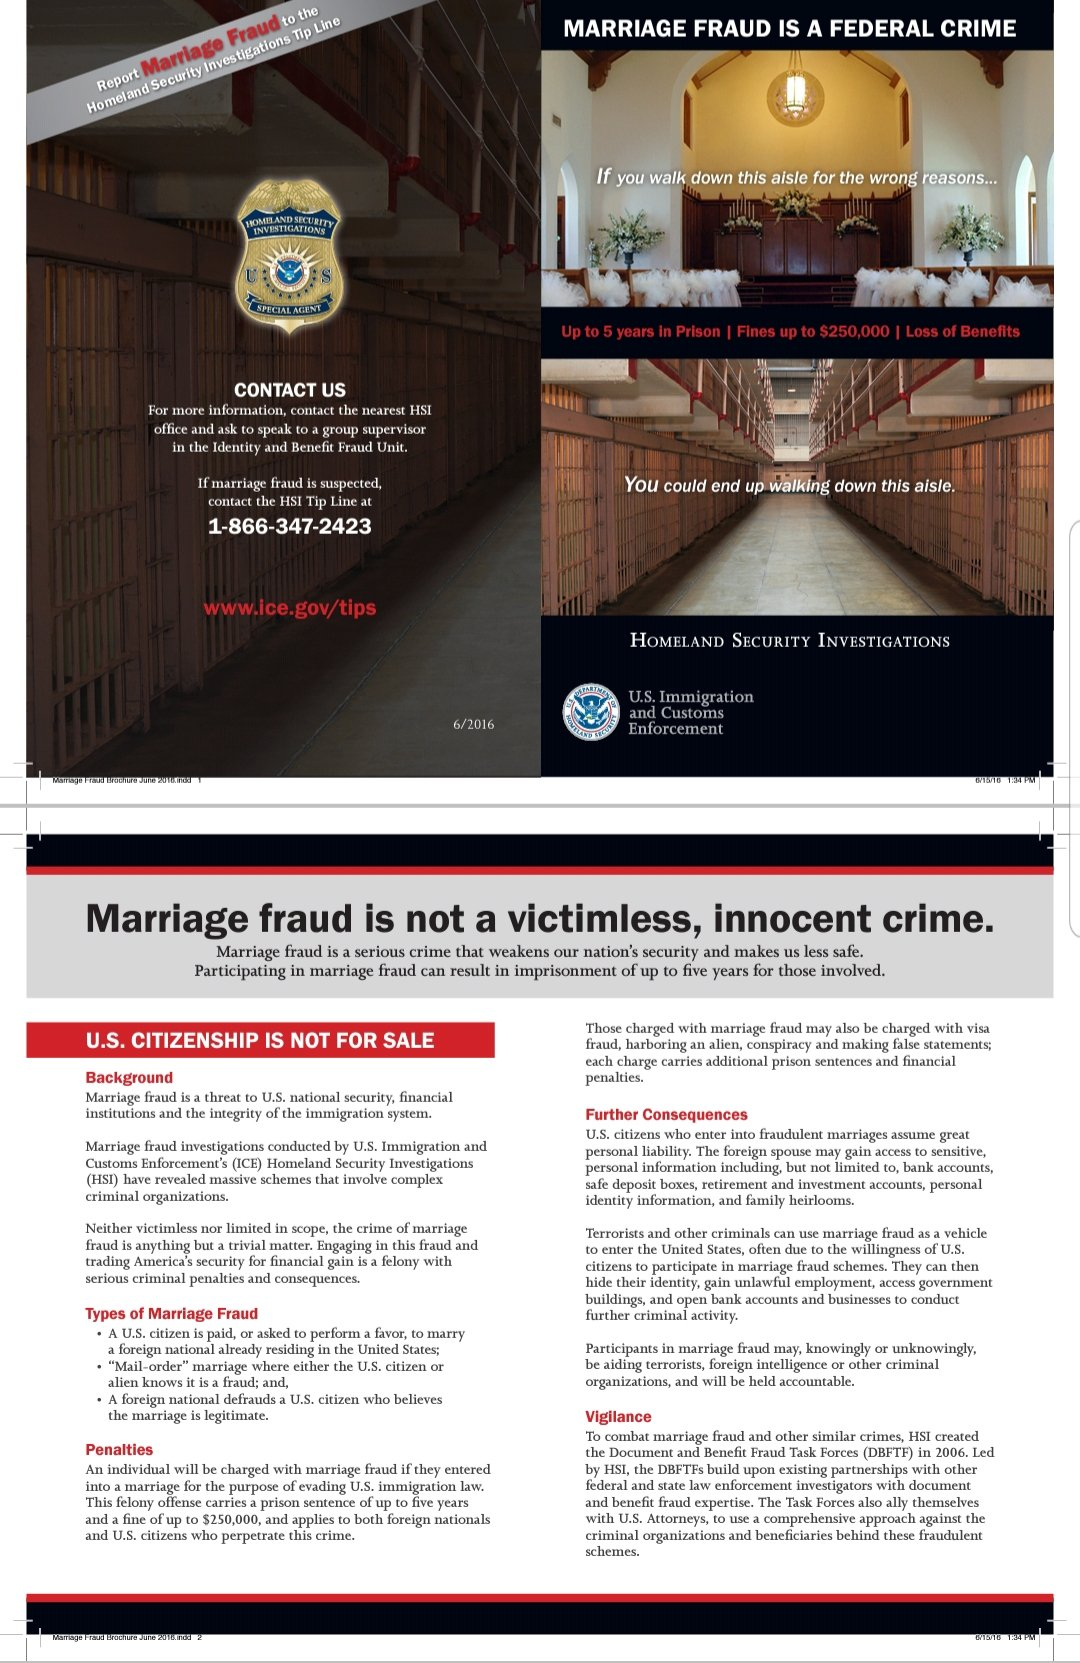 Fraud Marriage Effects Of Major Family Changes On Immigration Benefits Visajourney